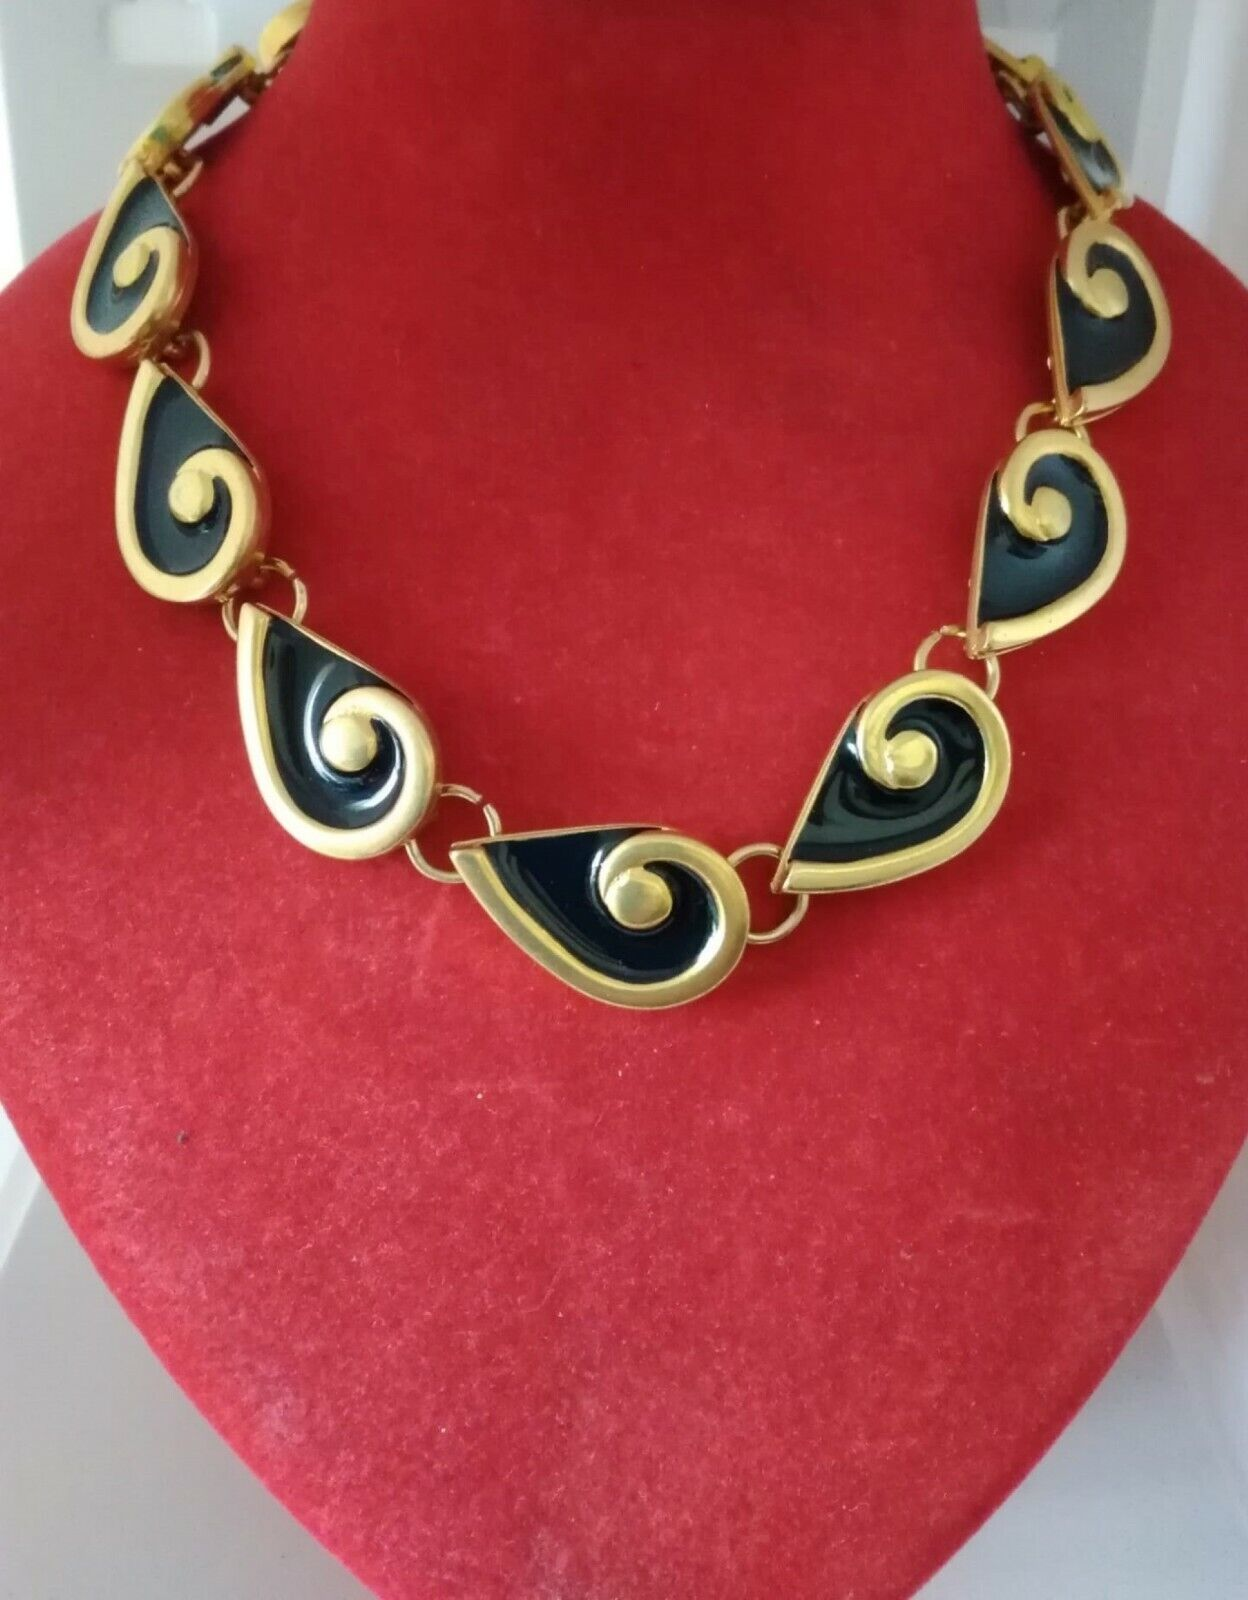 Vintage Necklace Women Girl years 70/80 Metal Enamel and Gold Color-show original title